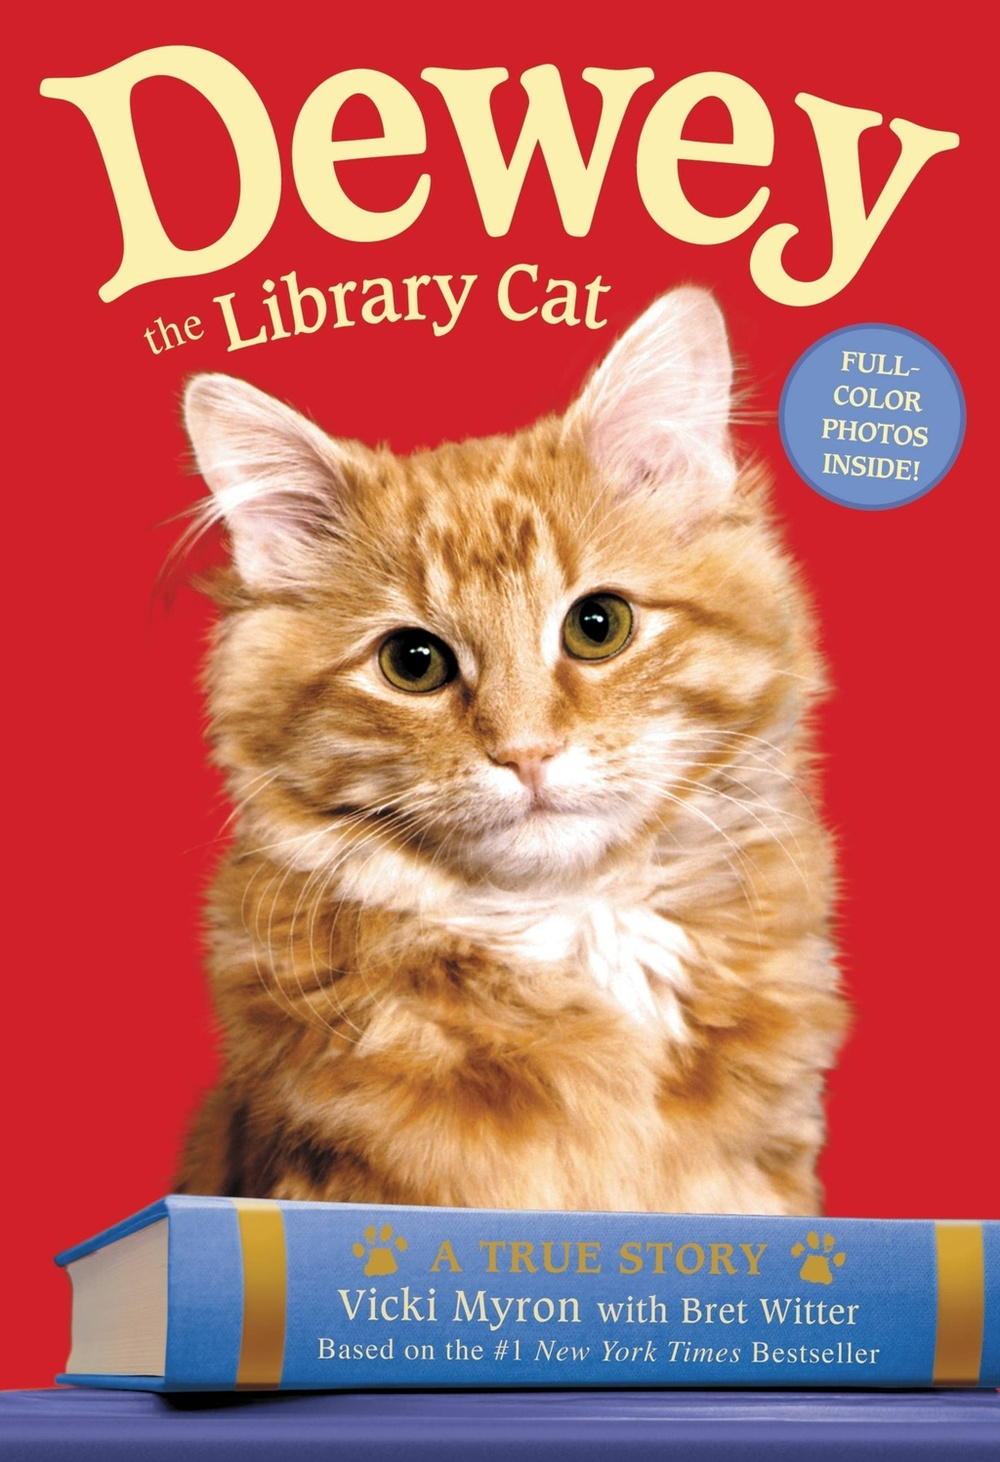 dewey the library cat.jpg